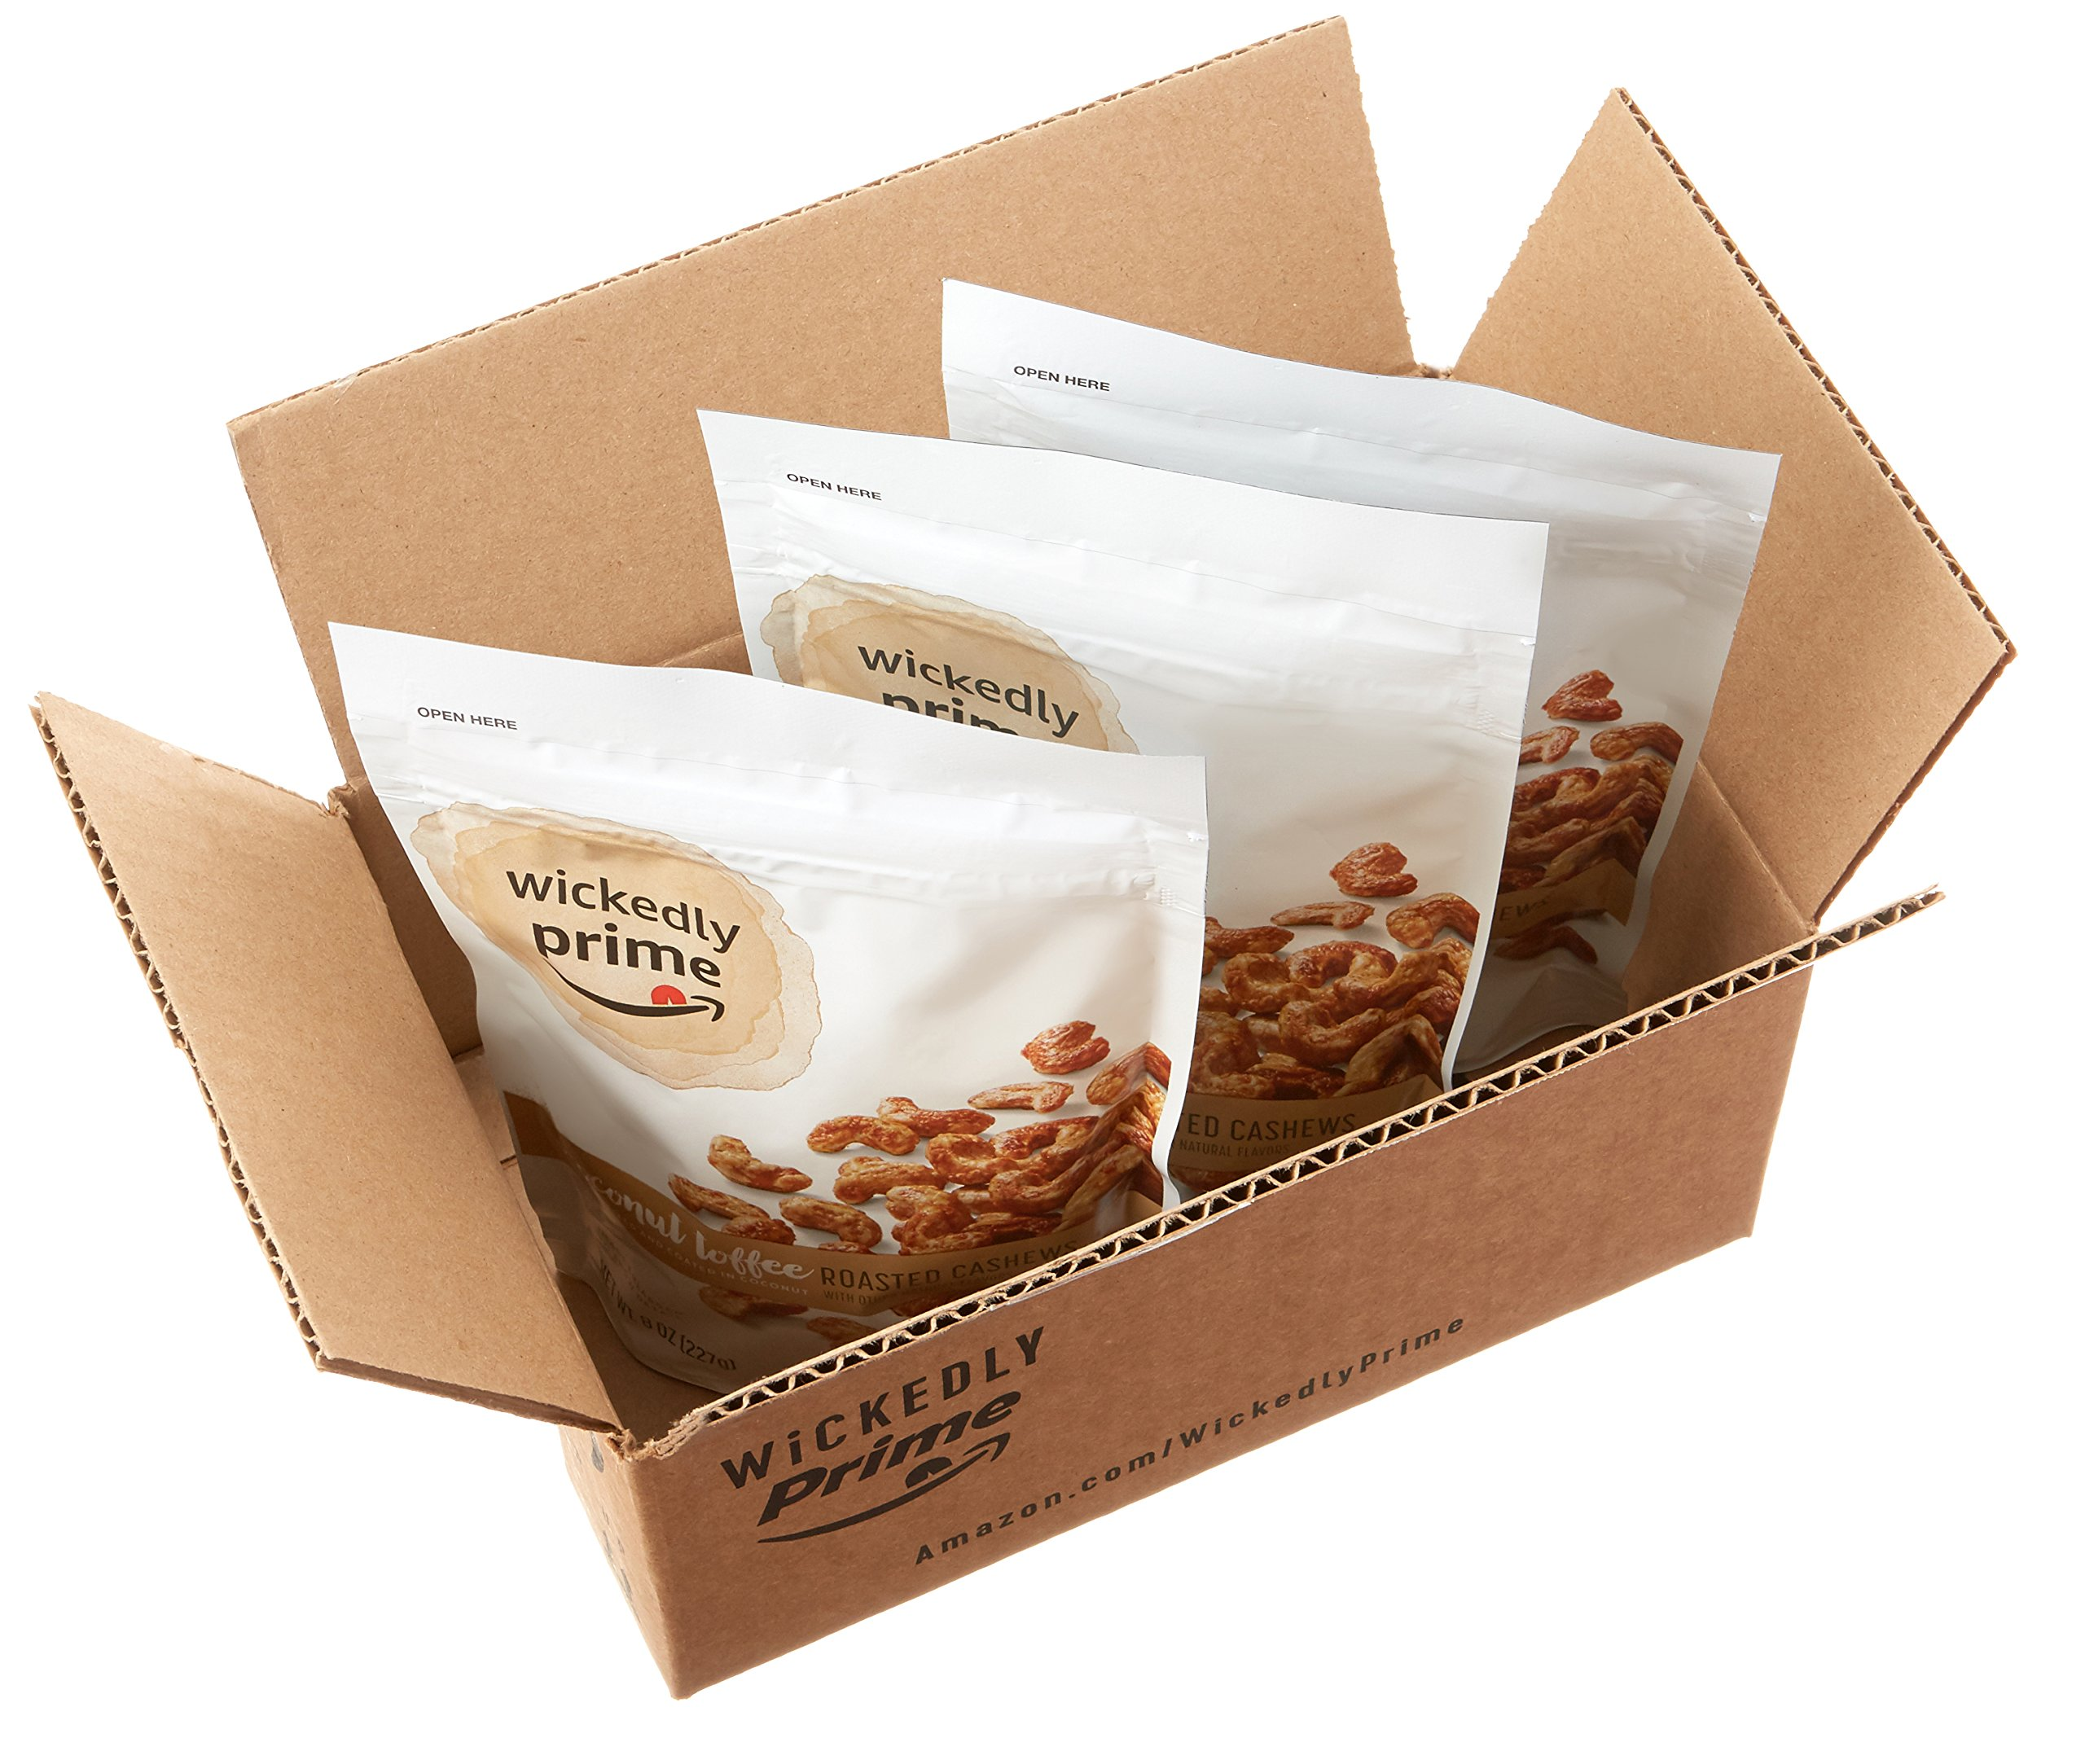 Wickedly Prime Roasted Cashews, Coconut Toffee, 8 Ounce (Pack of 3) by Wickedly Prime (Image #7)